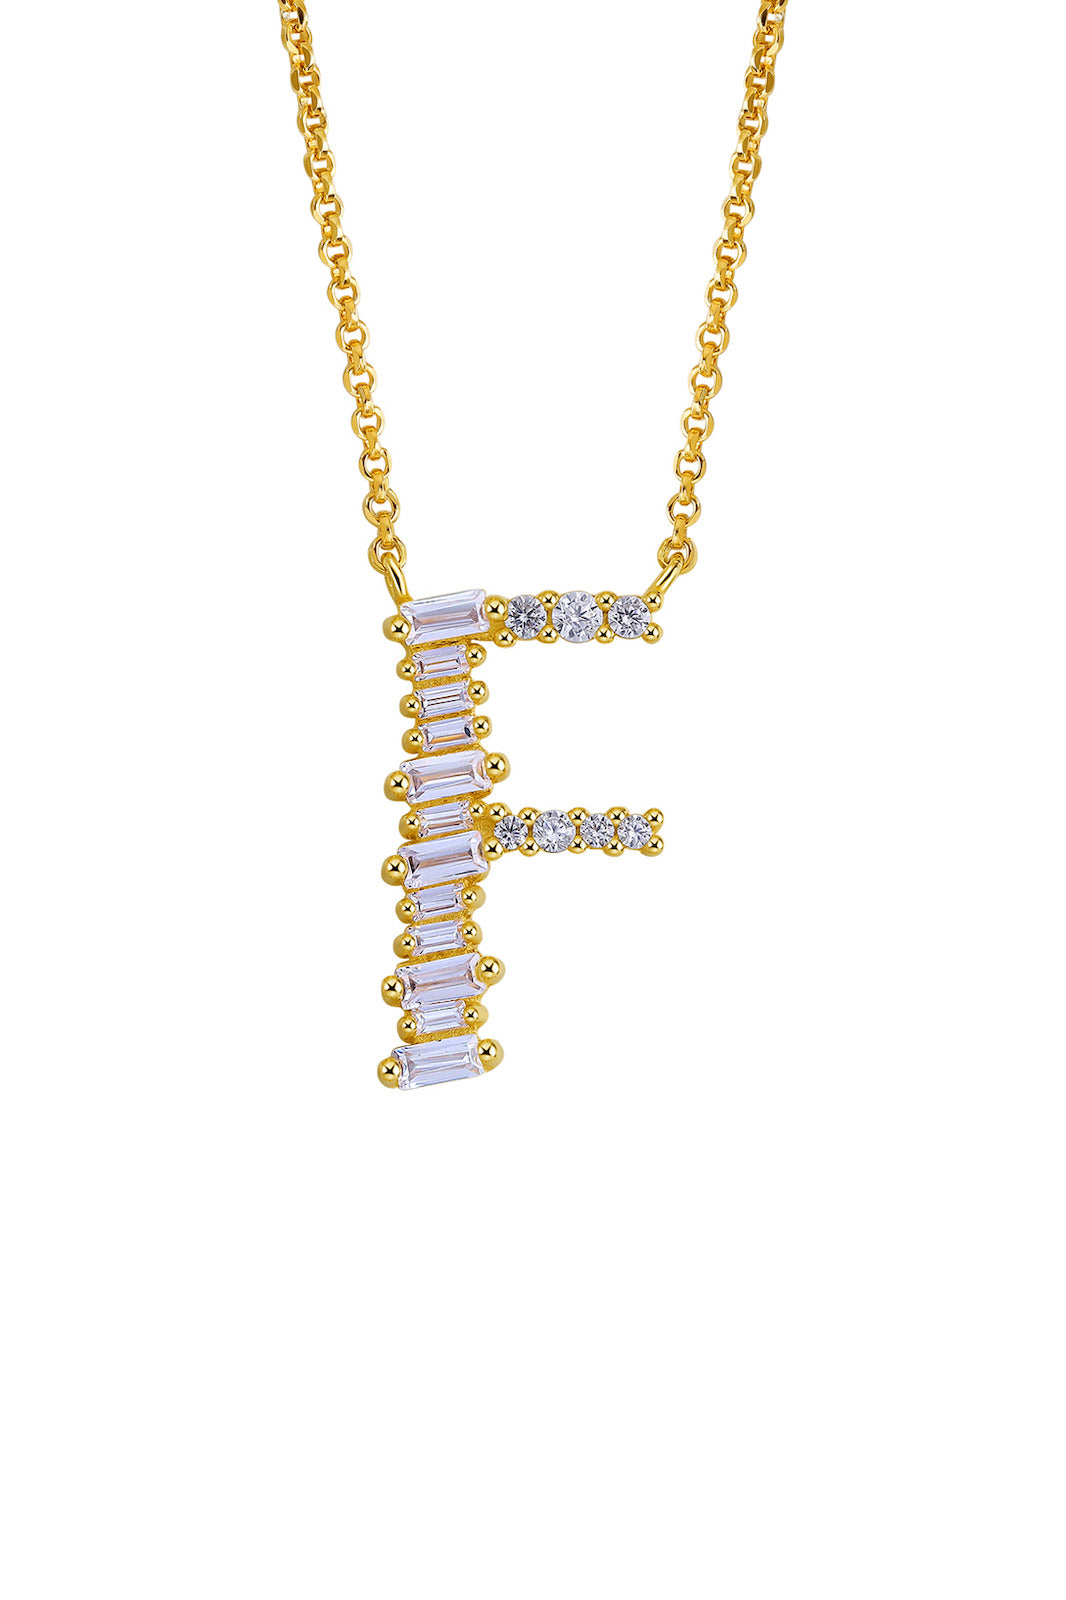 Gold Plated Sterling Silver Initial Necklace - Letter F Detail